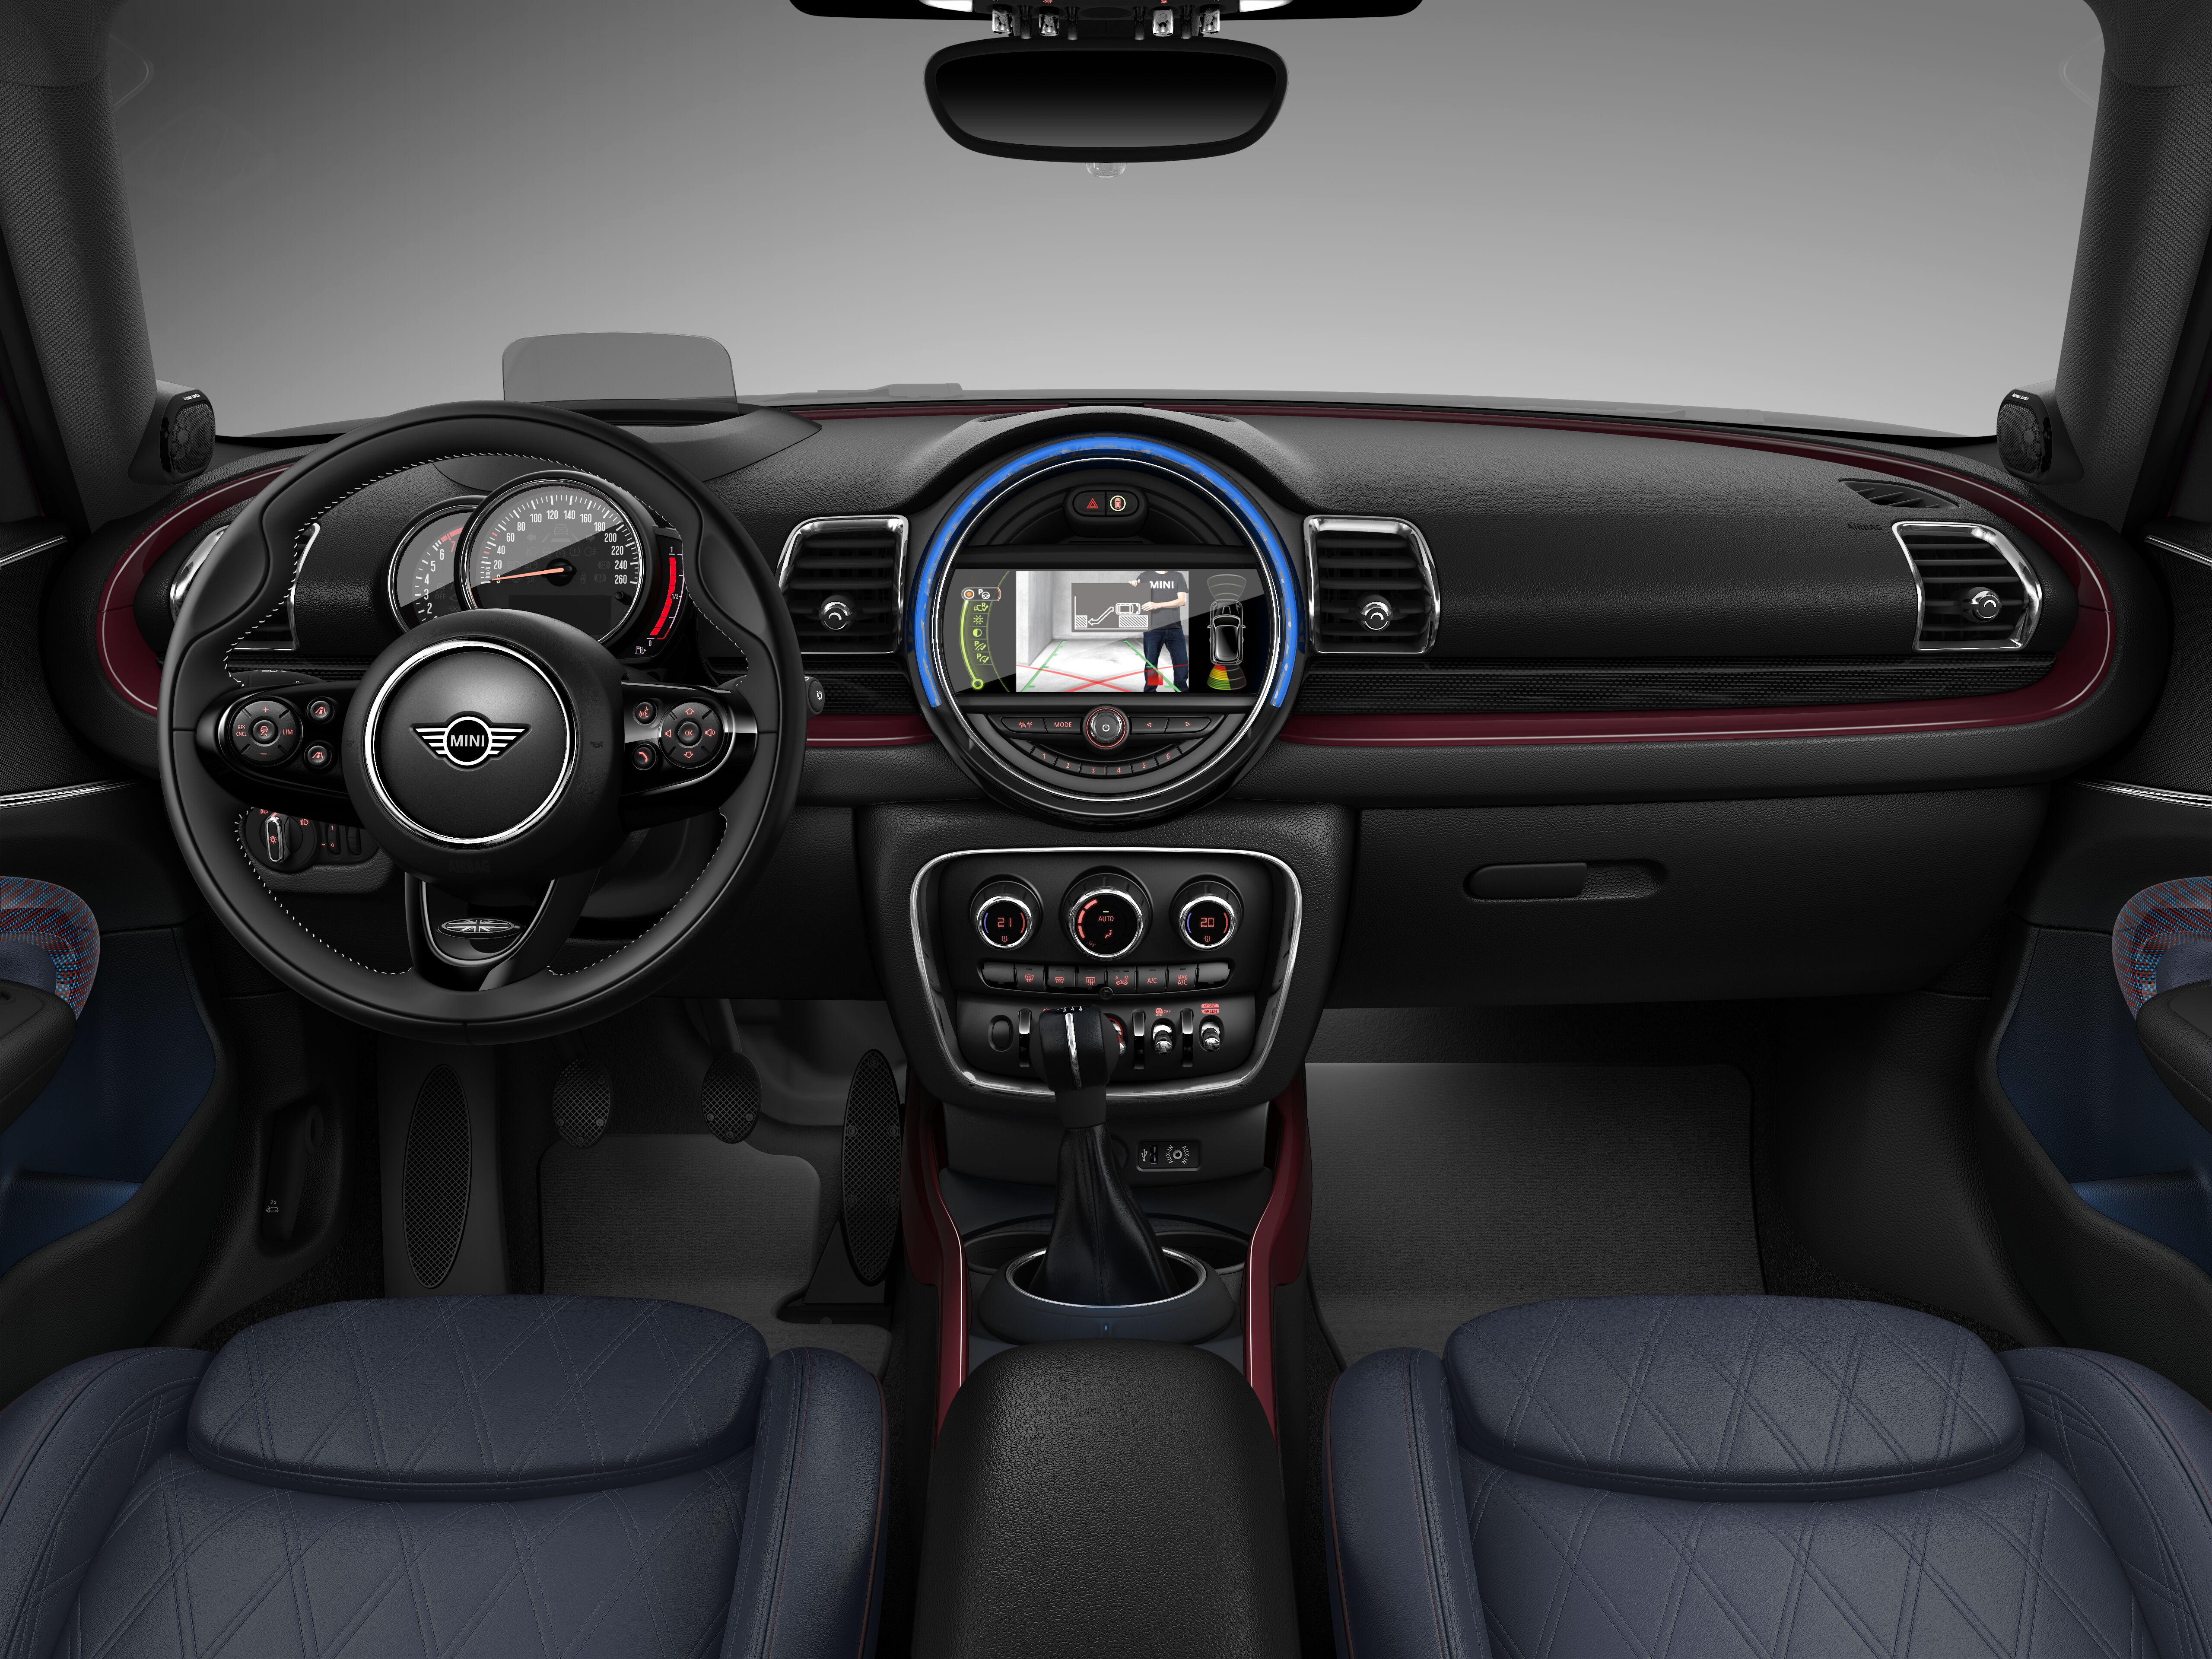 MINI Cooper Clubman interior; dashboard and steering wheel